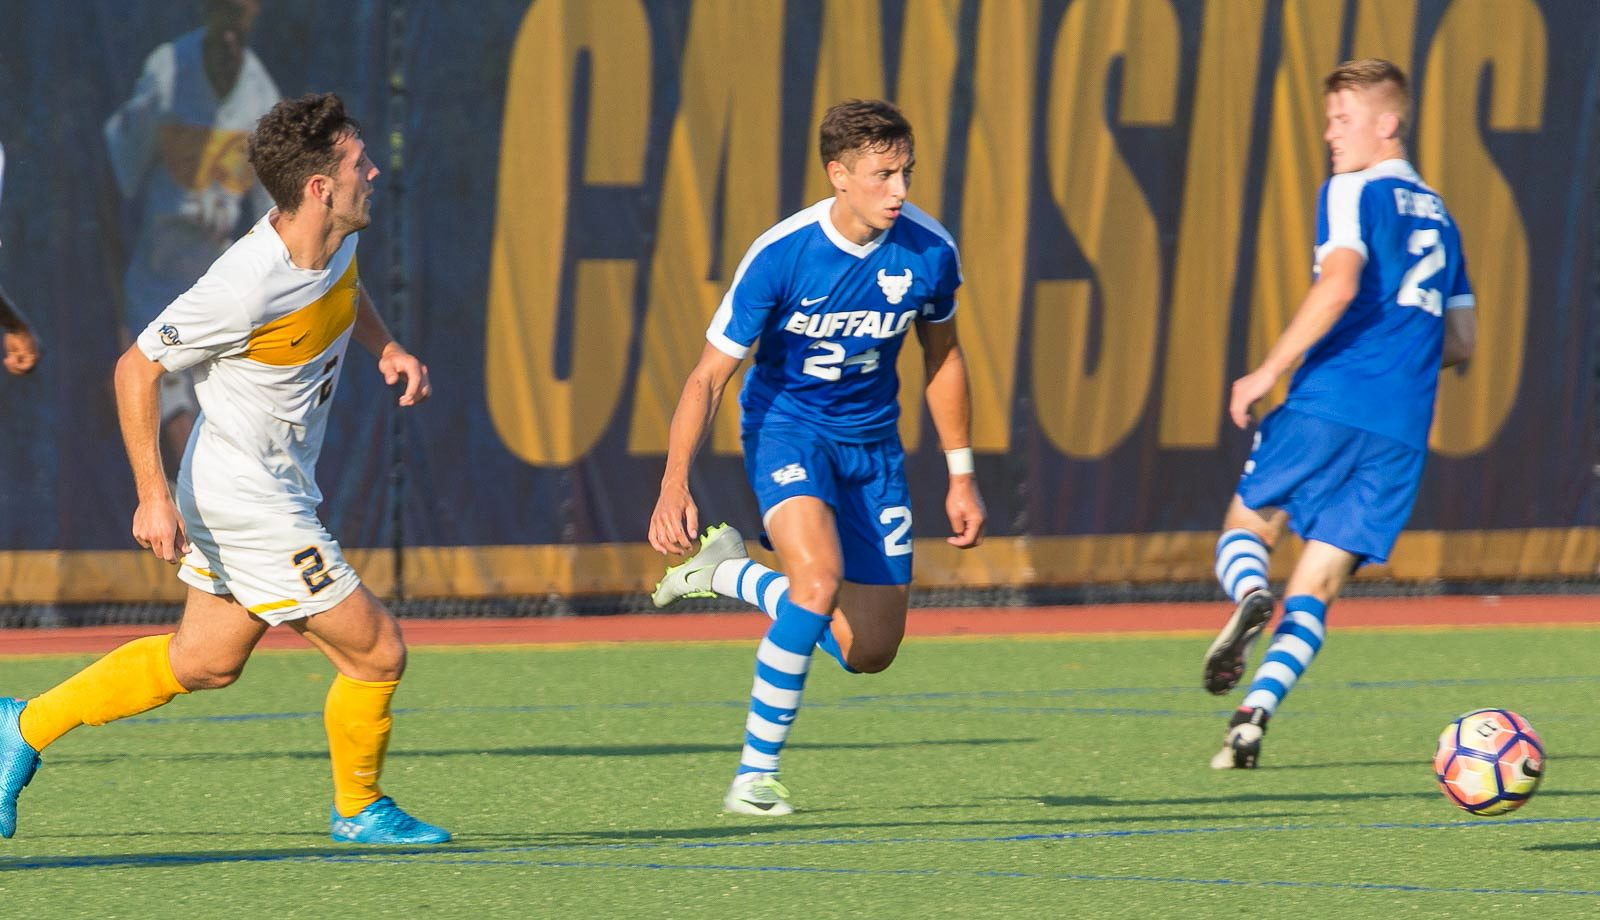 UB's Braden Scales, middle, already has a career-high in goals. (Don Nieman/Special to The News)